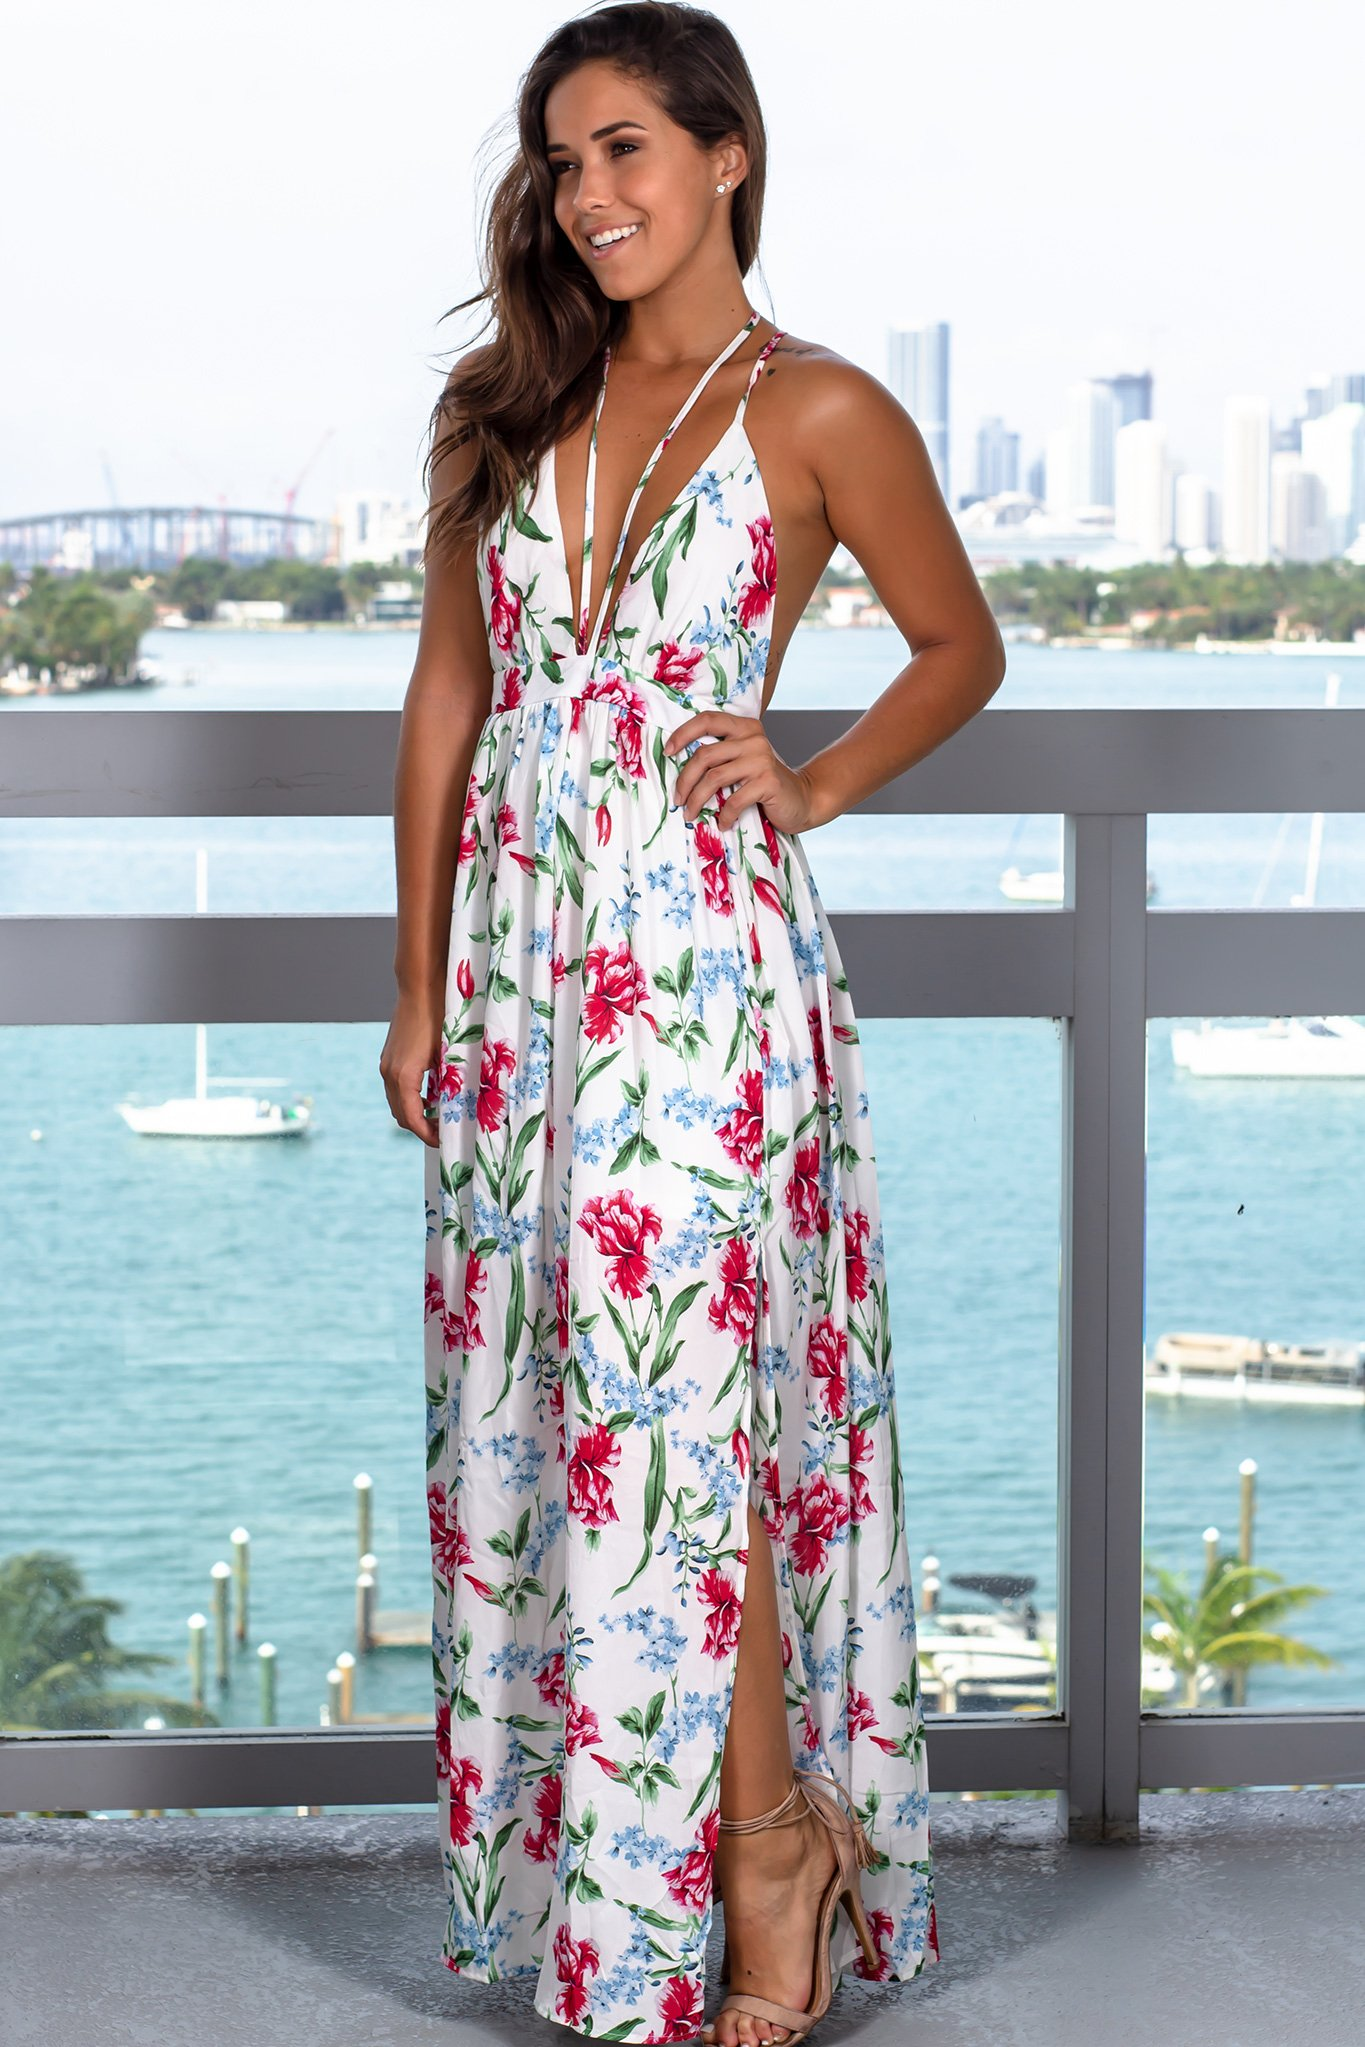 94968d0dd32 This Off White Floral Maxi Dress with Criss Cross Back is so beautiful!  Perfect for any special occasion this Summer. You can never go wrong with a  dress ...